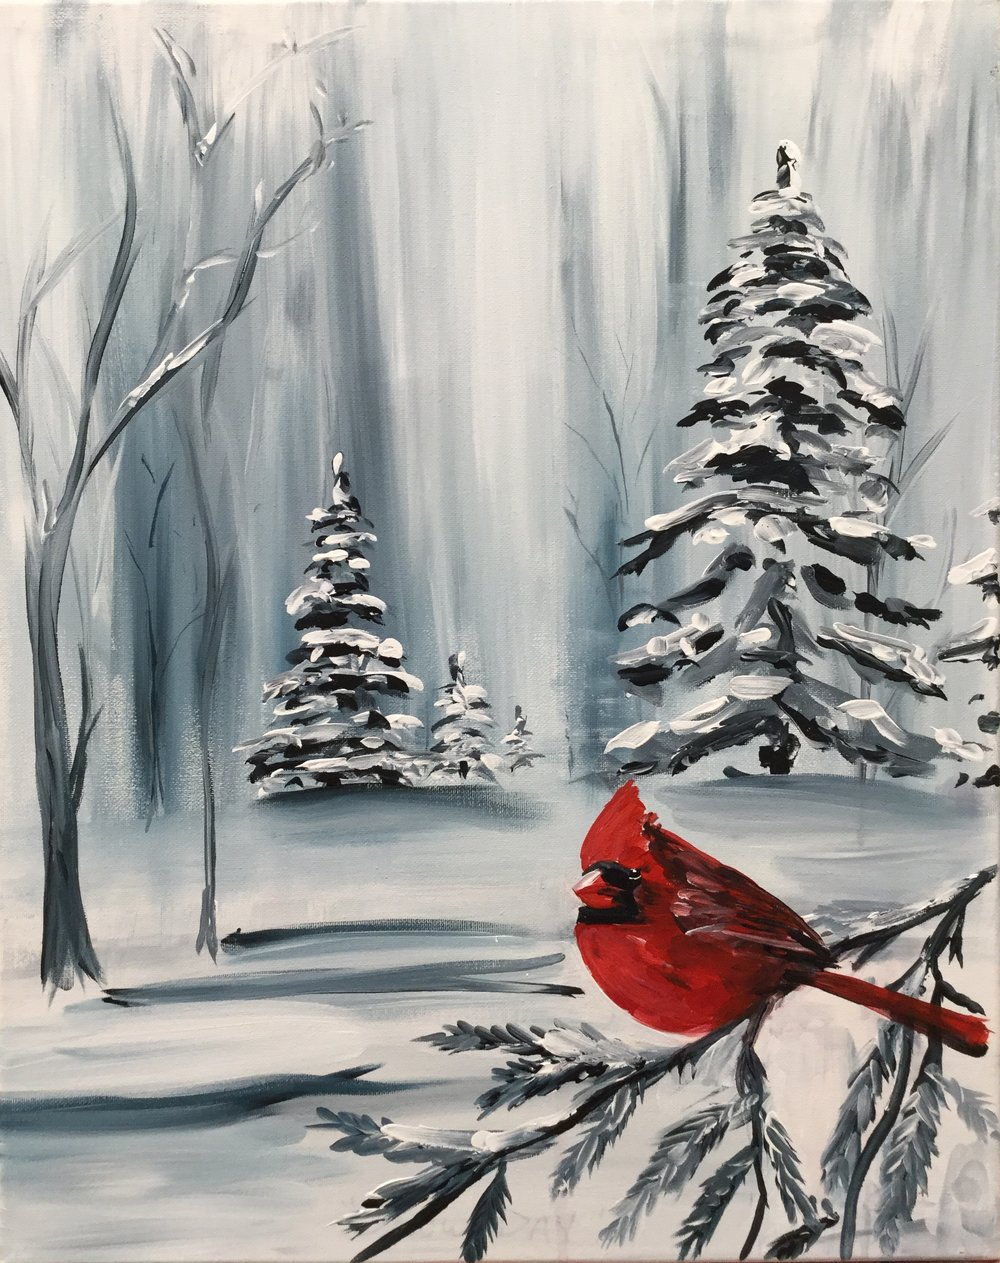 PINT & Paint: Snow Bird - Meet Adam Meikle at the Brew Pub for PINT & Paint: Snow Bird. Includes step by step instruction for beginners!Level: EasyPrice: $40/ ea.